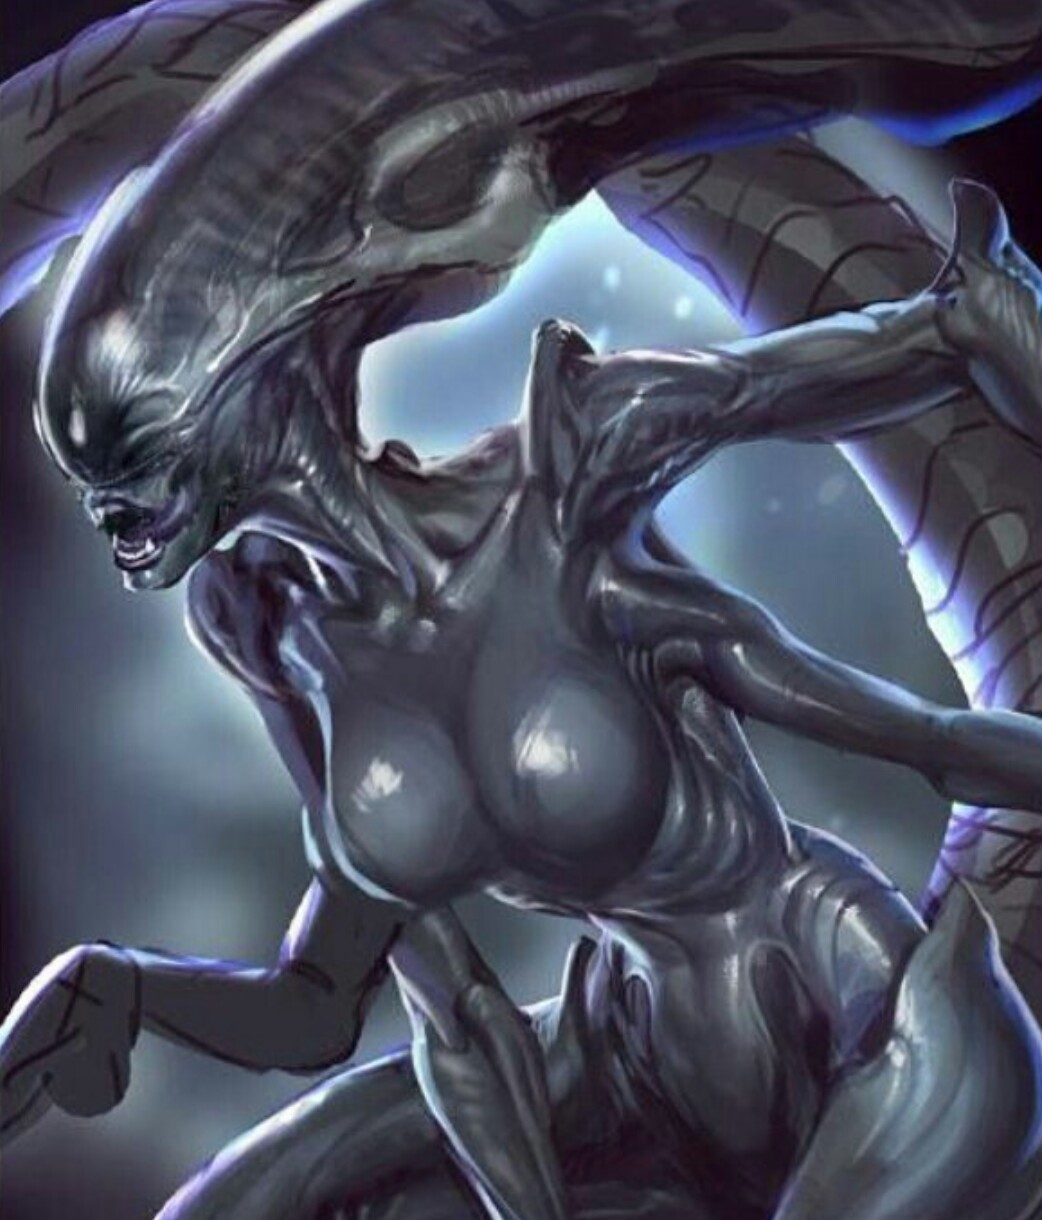 Alien female porn photo sex comics